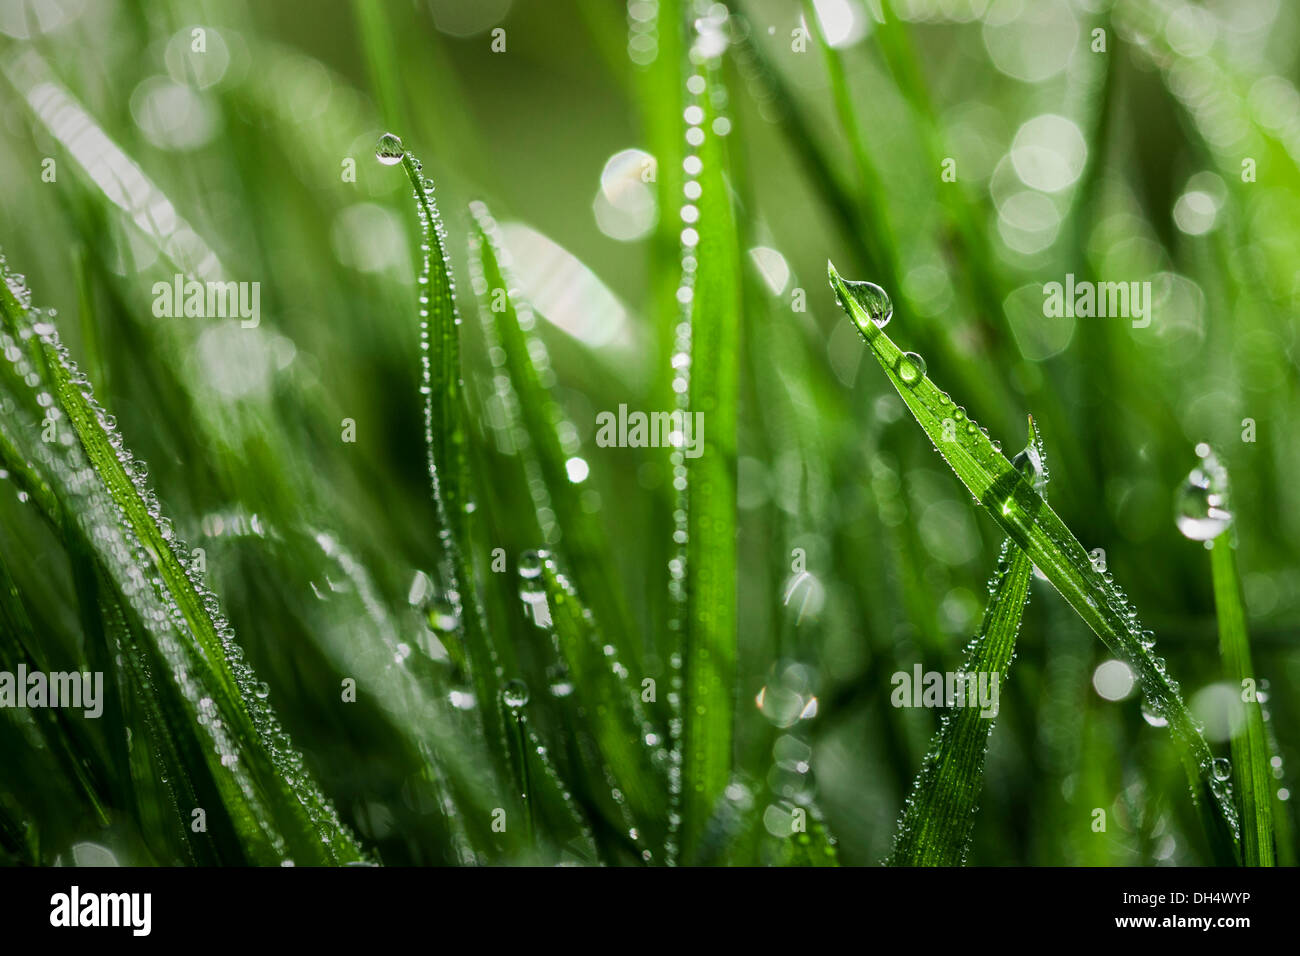 Many blades of grass covered in dew drops - Stock Image